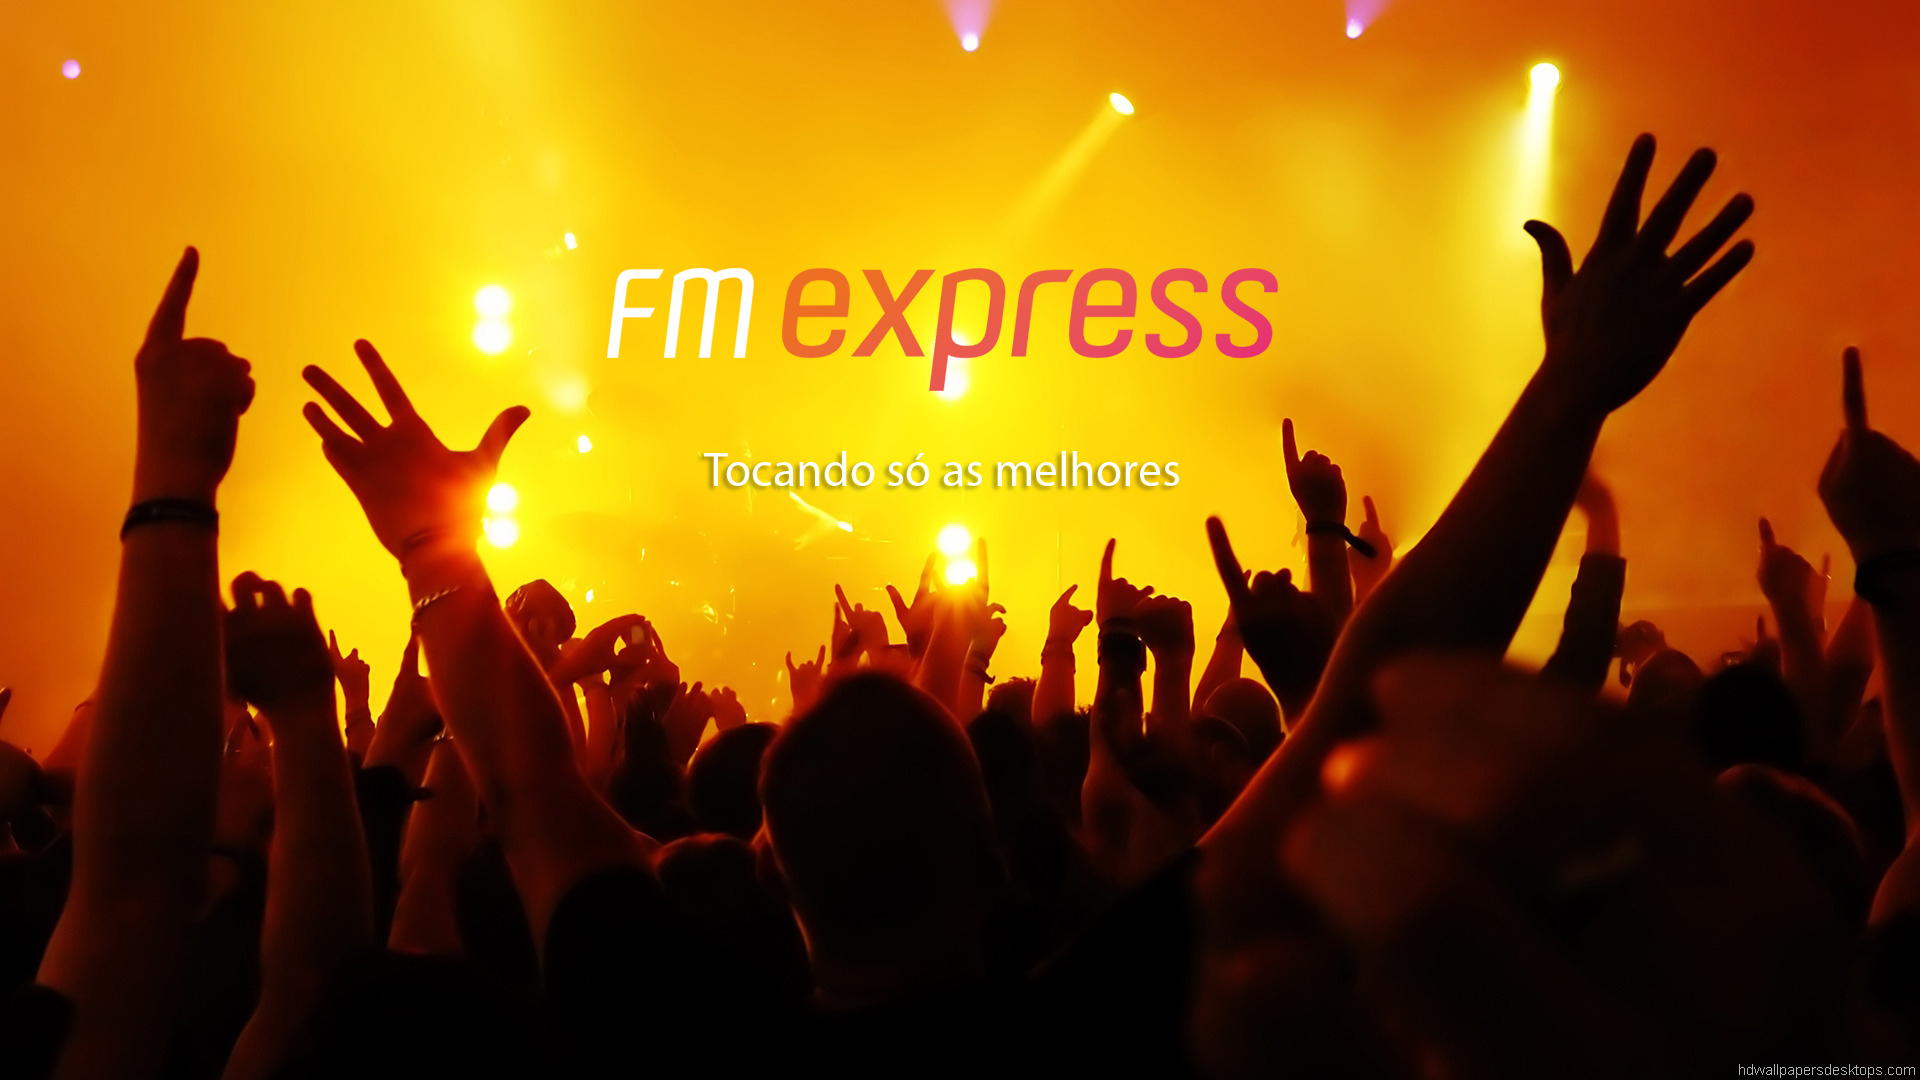 fm-exprees[1]